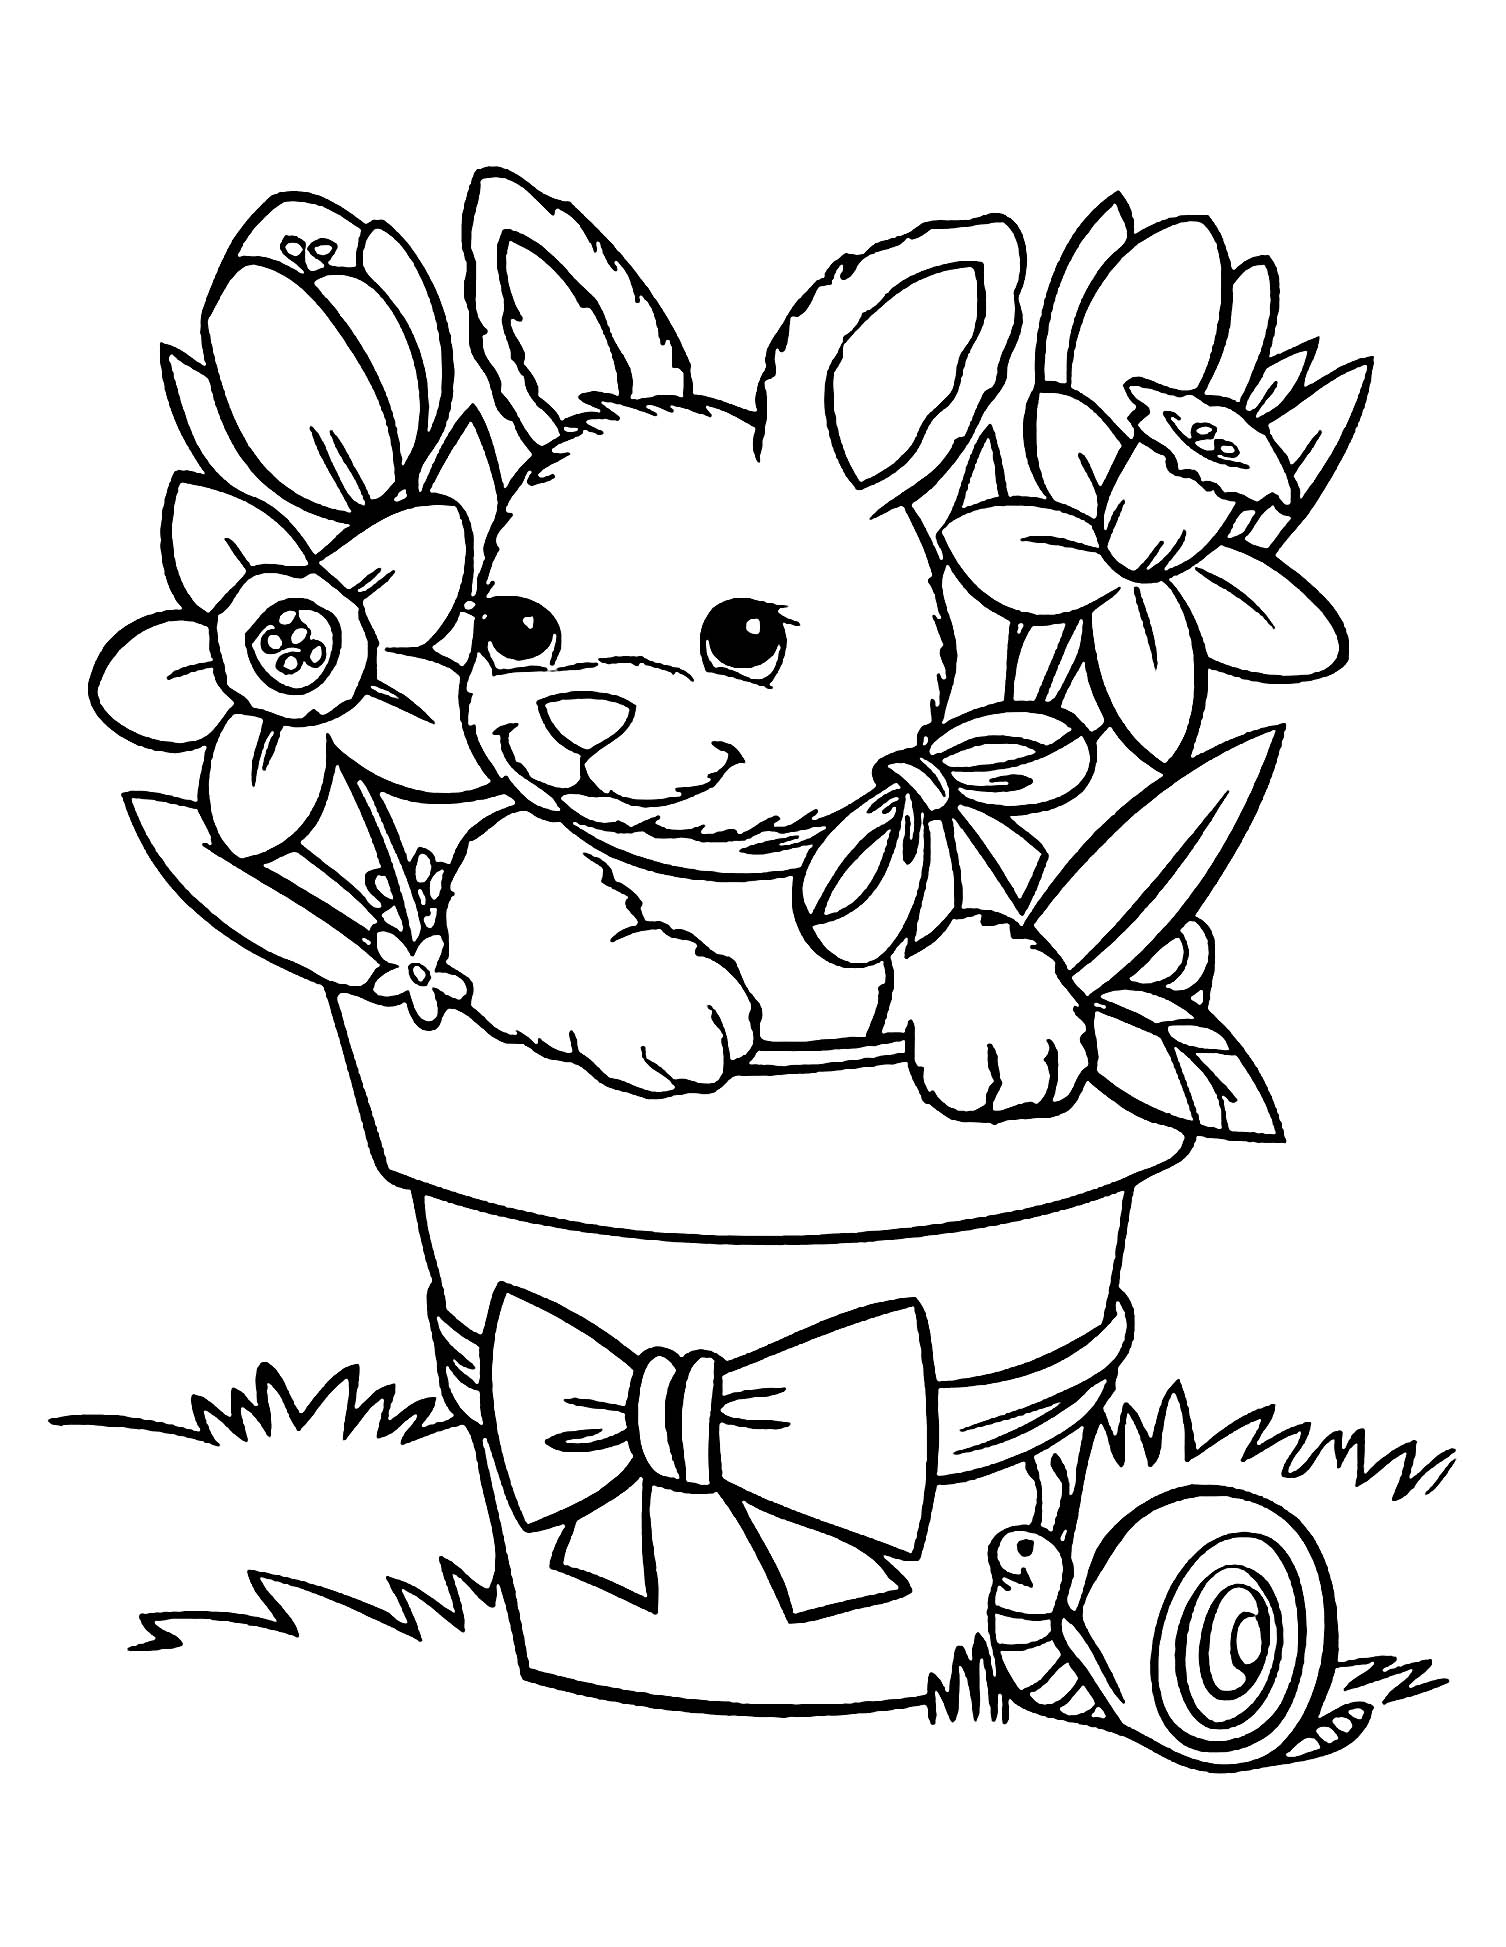 bunny picture to color cute bunny colouring image picture bunny color to